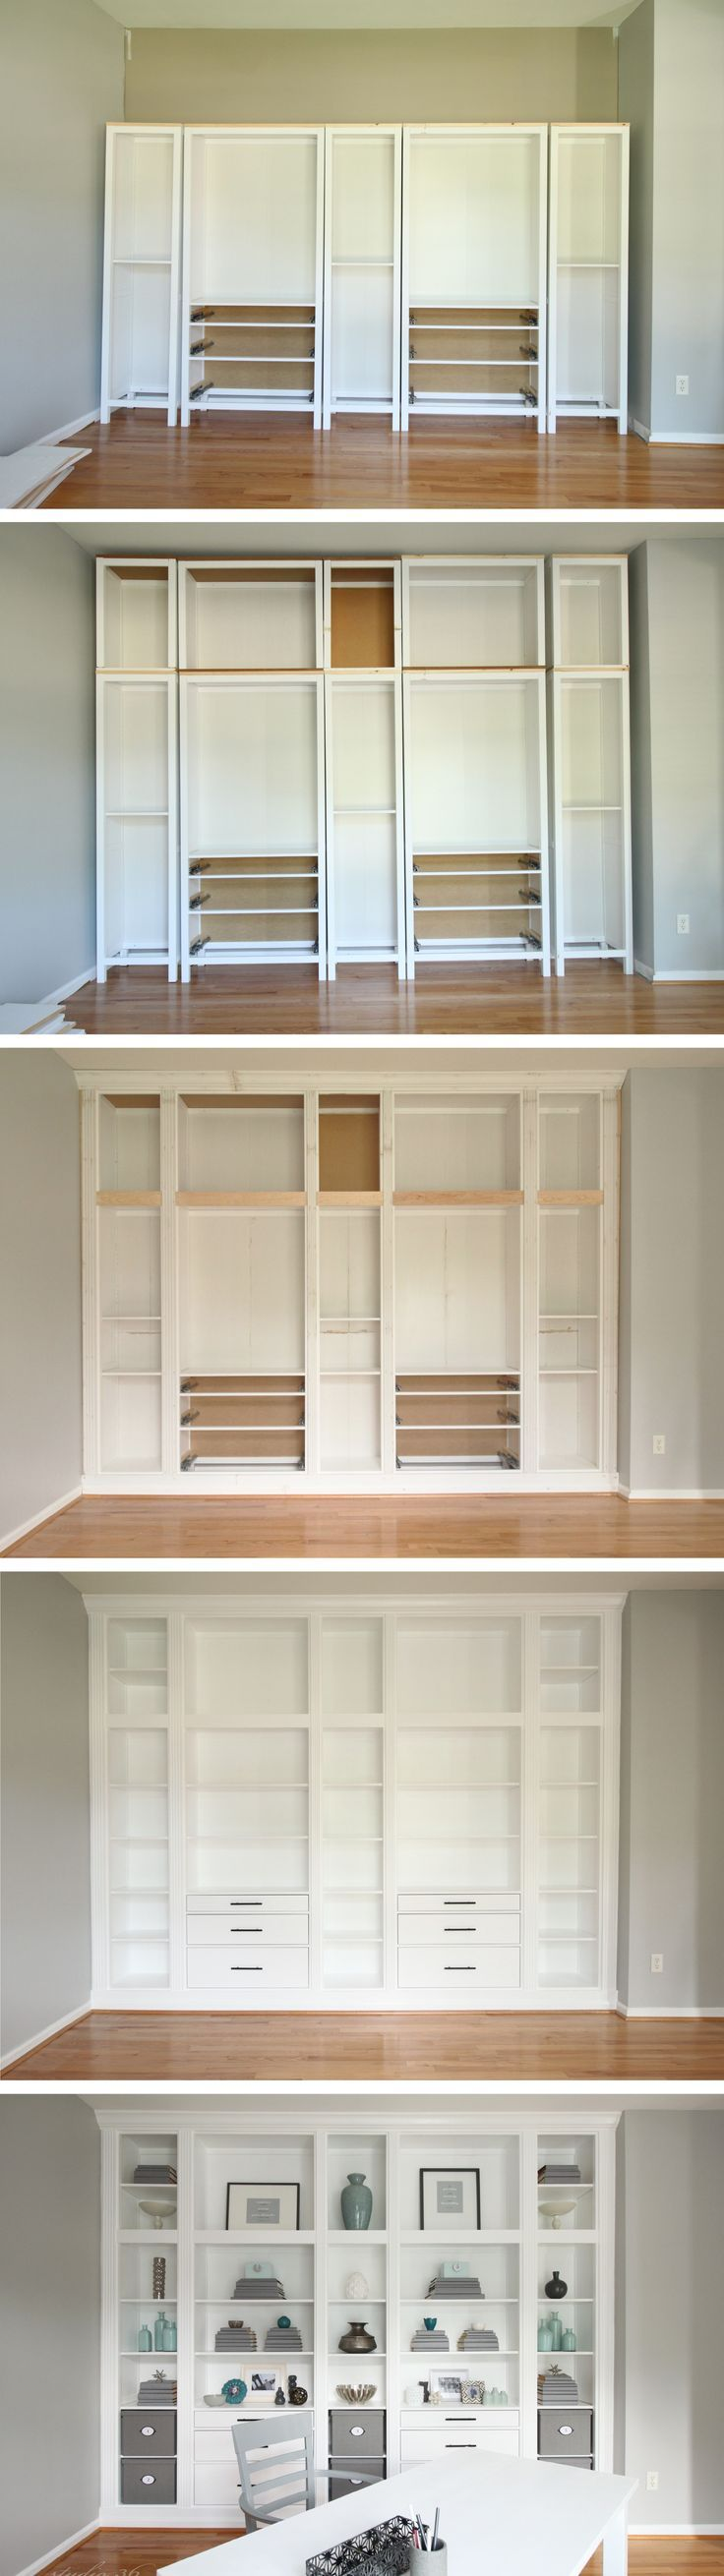 Captivating DIY Built In Bookcases Made With Ikea Hemnes Furniture, Custom Built In  Storage Idea